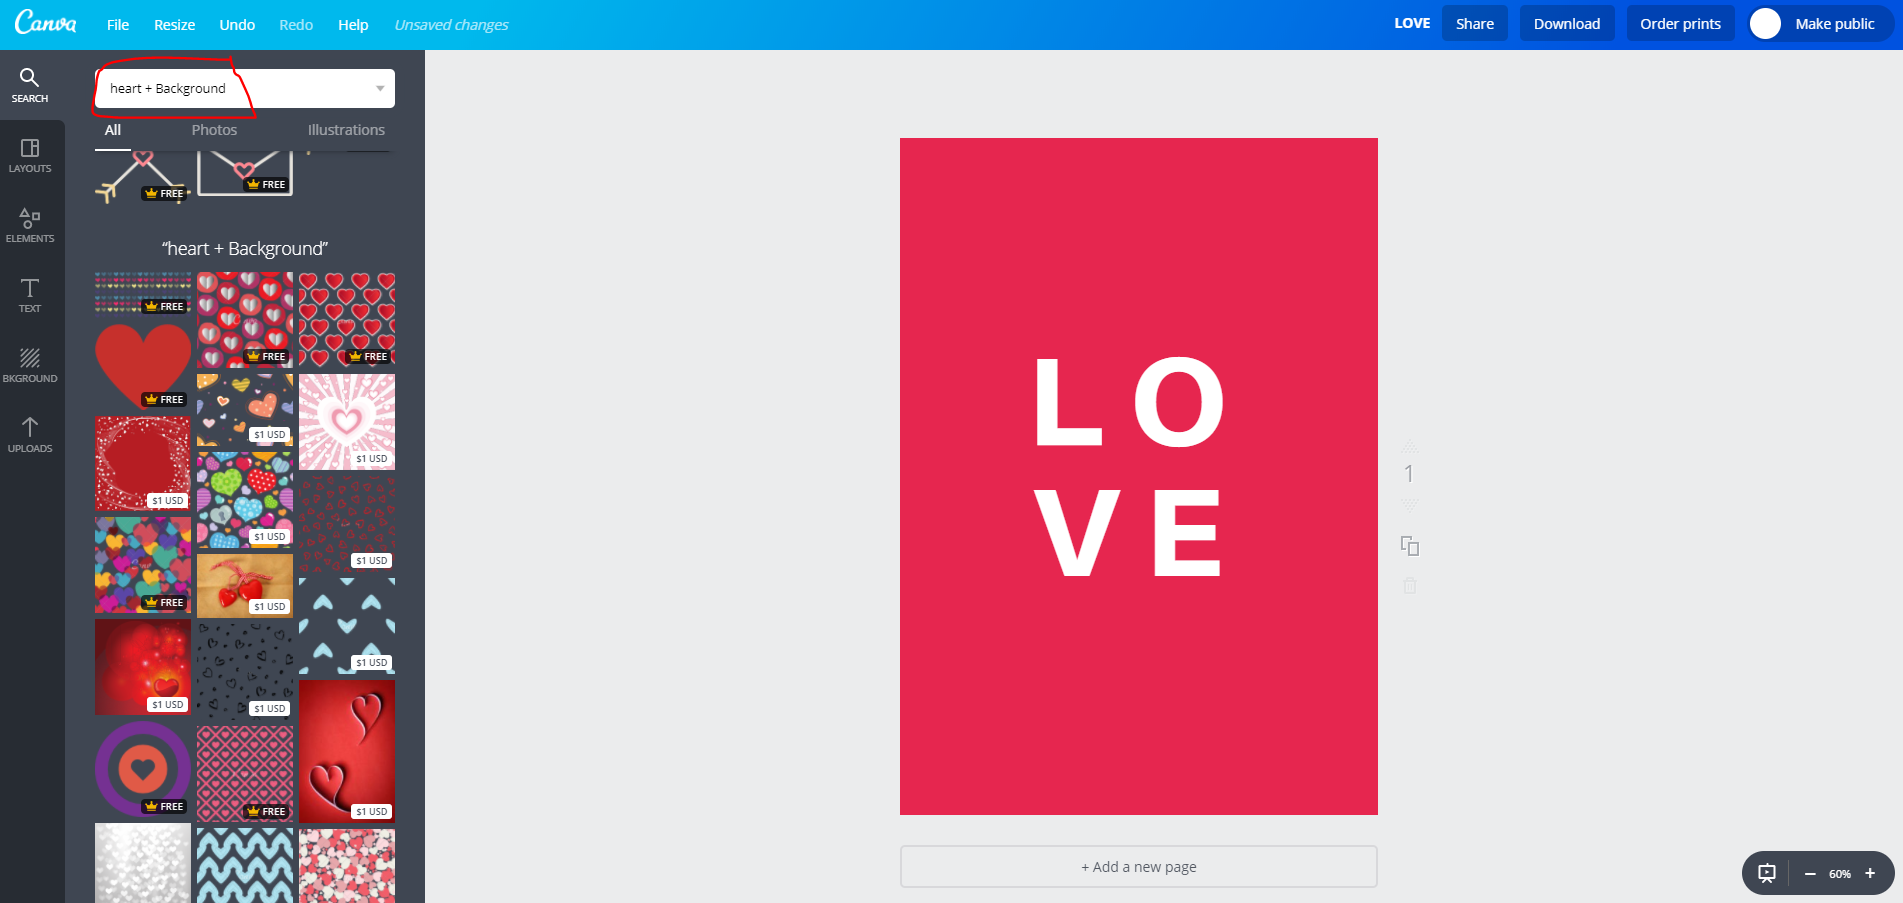 canva image search using plus sign